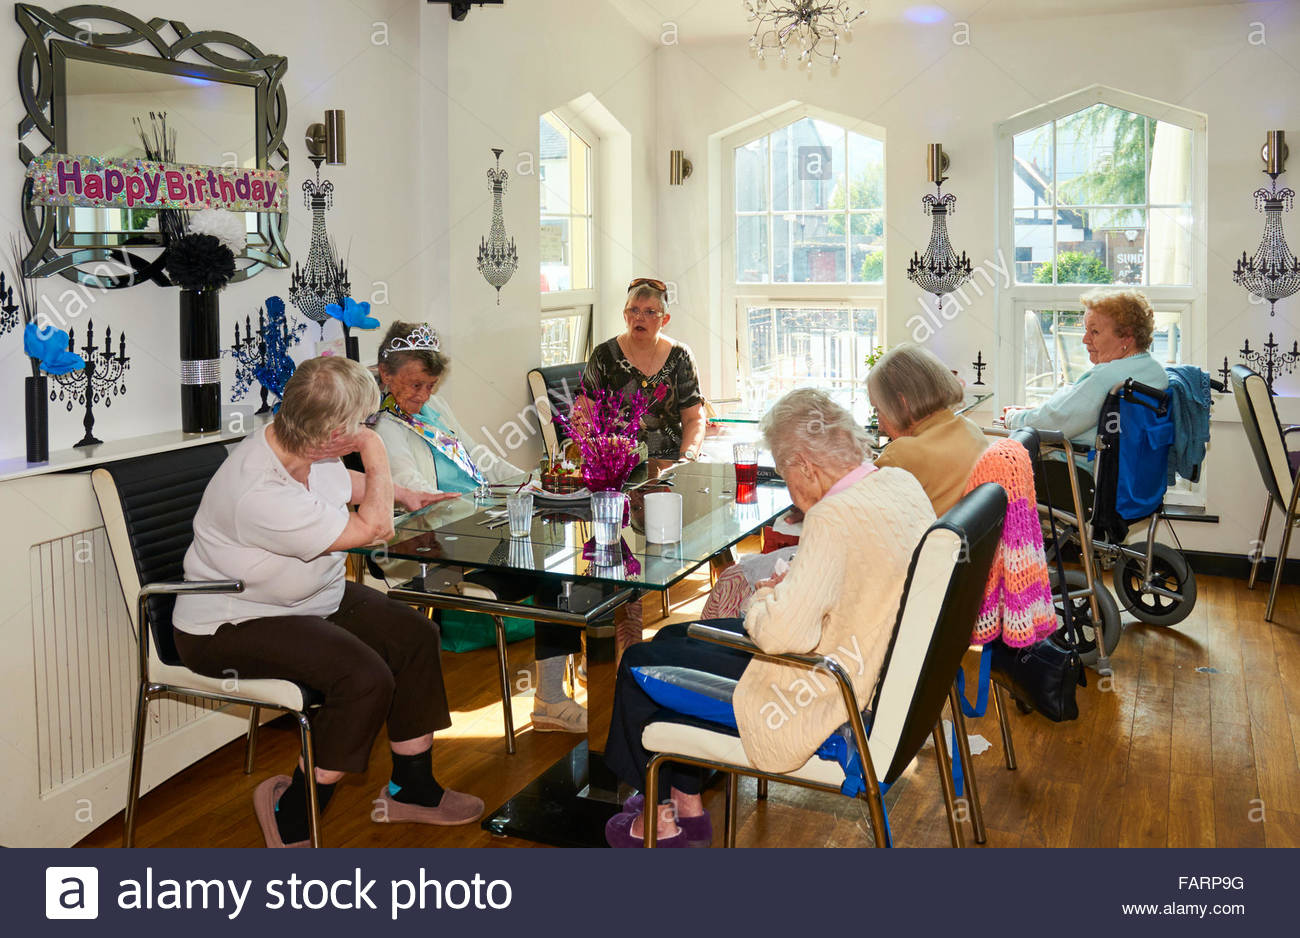 Daughter in law visiting elderly people in a care home having a birthday party - Stock Image